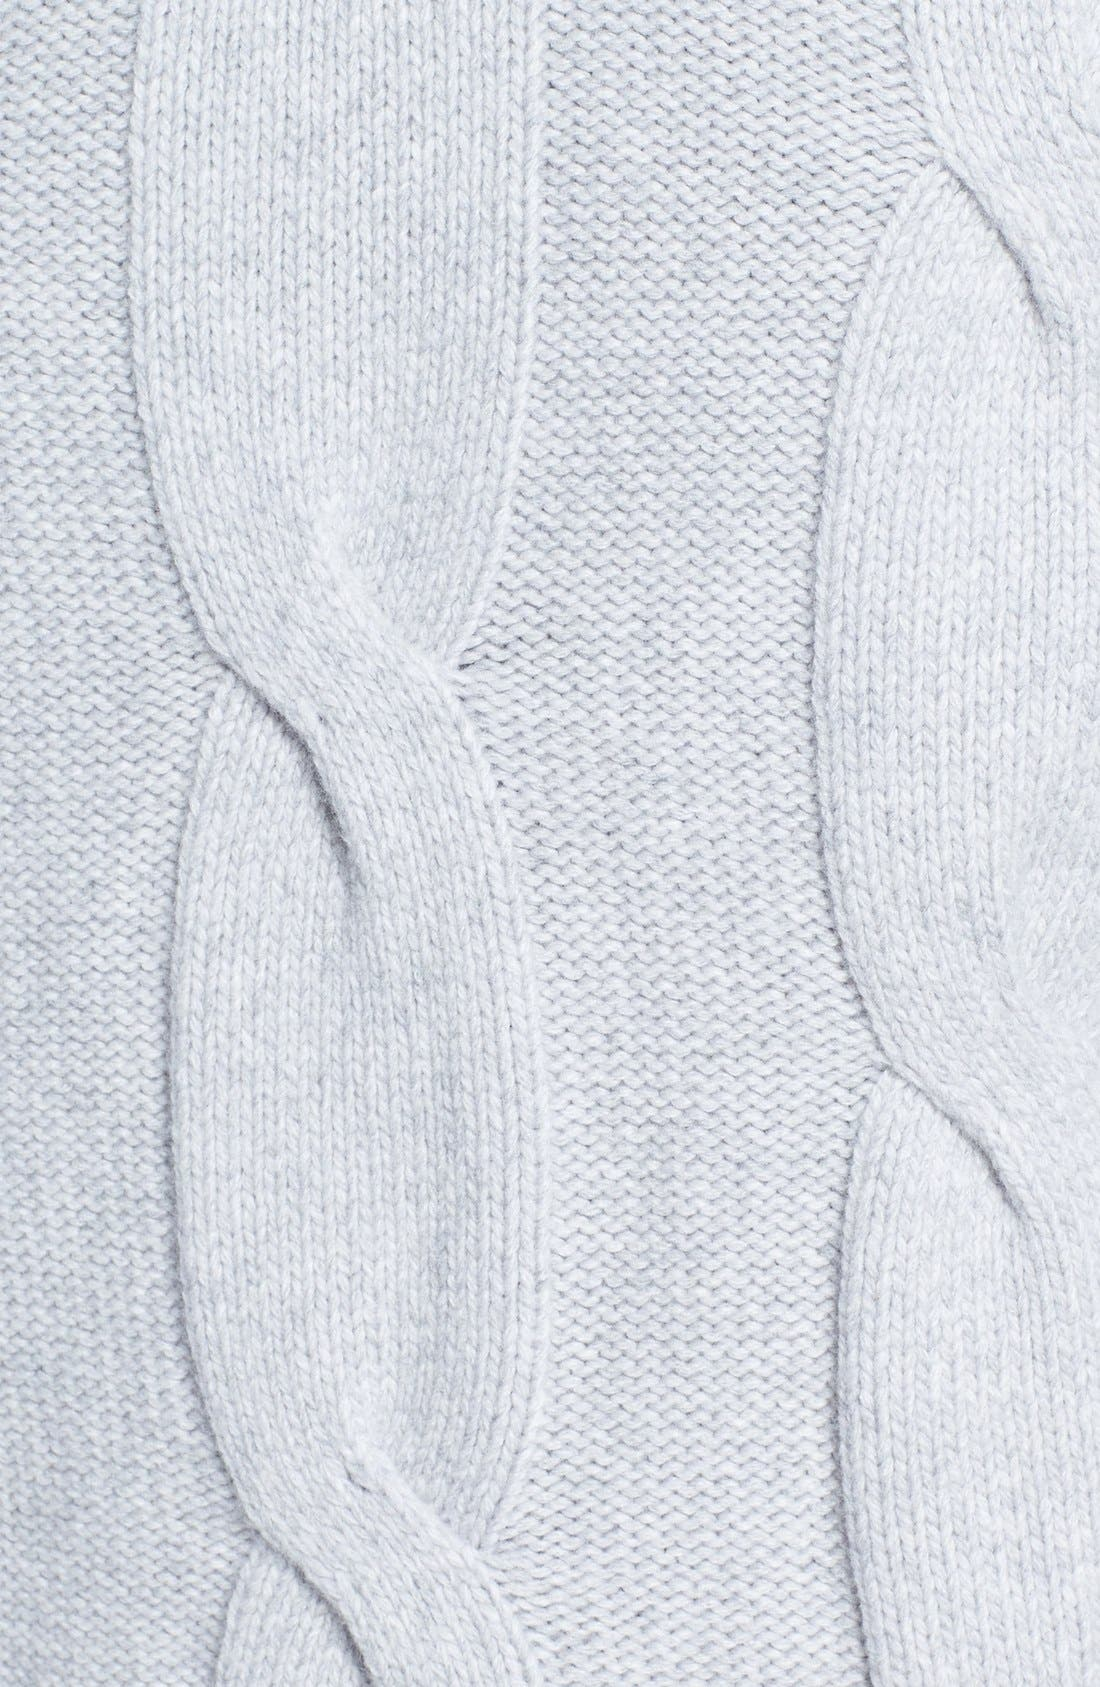 Wool & Cashmere Sweater,                             Alternate thumbnail 5, color,                             Light Grey